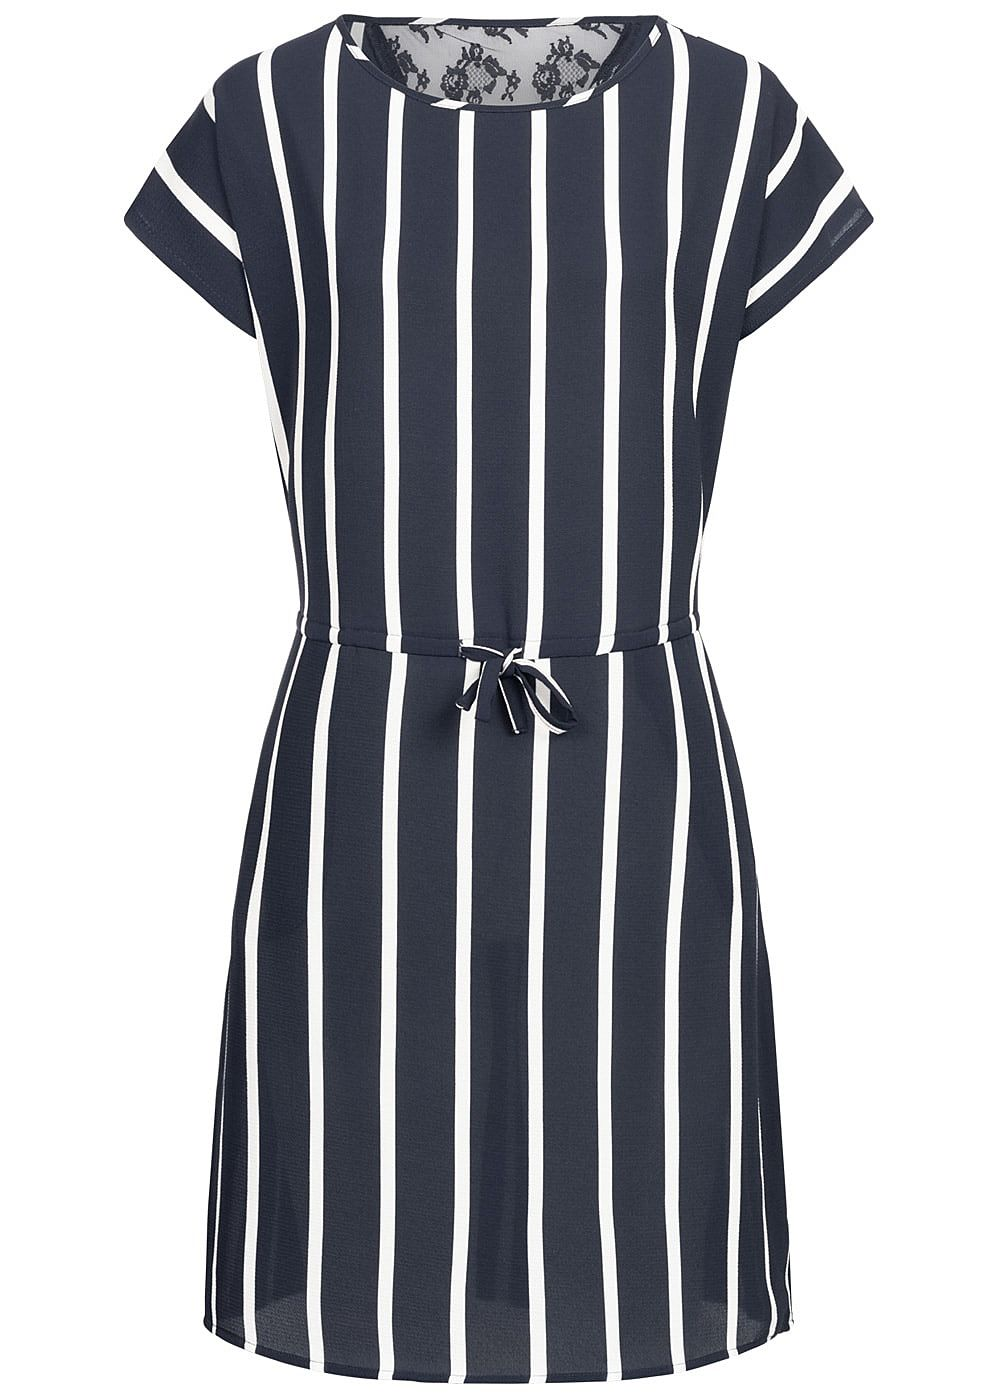 ONLY Damen Striped Dress Lace Detail night sky blau weiss - Art.-Nr.: 19030881-S36-NY